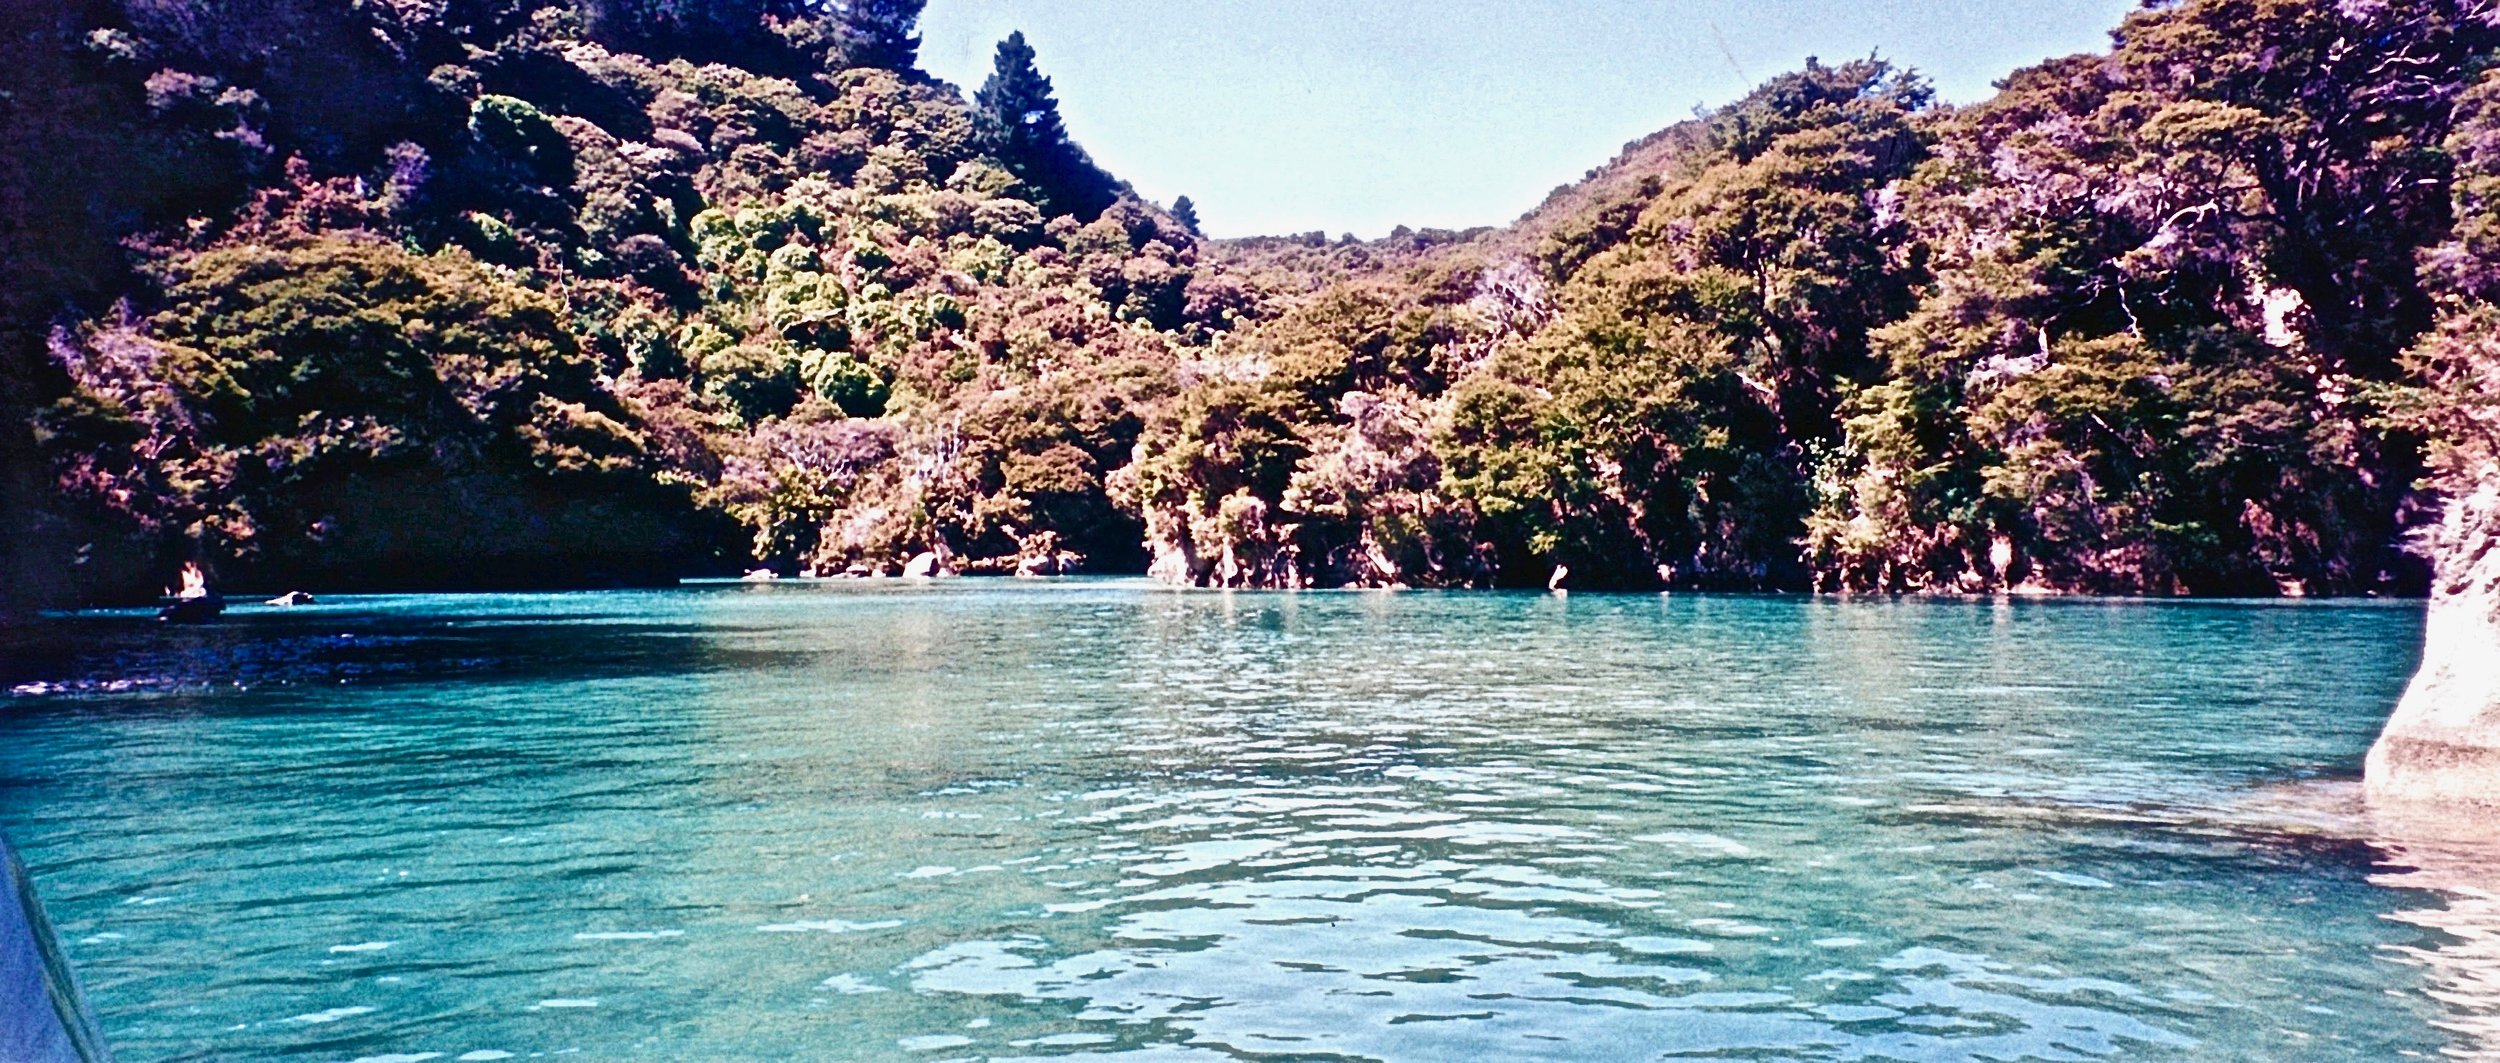 Maori Cove Abel Tasmin National Park, New Zealand